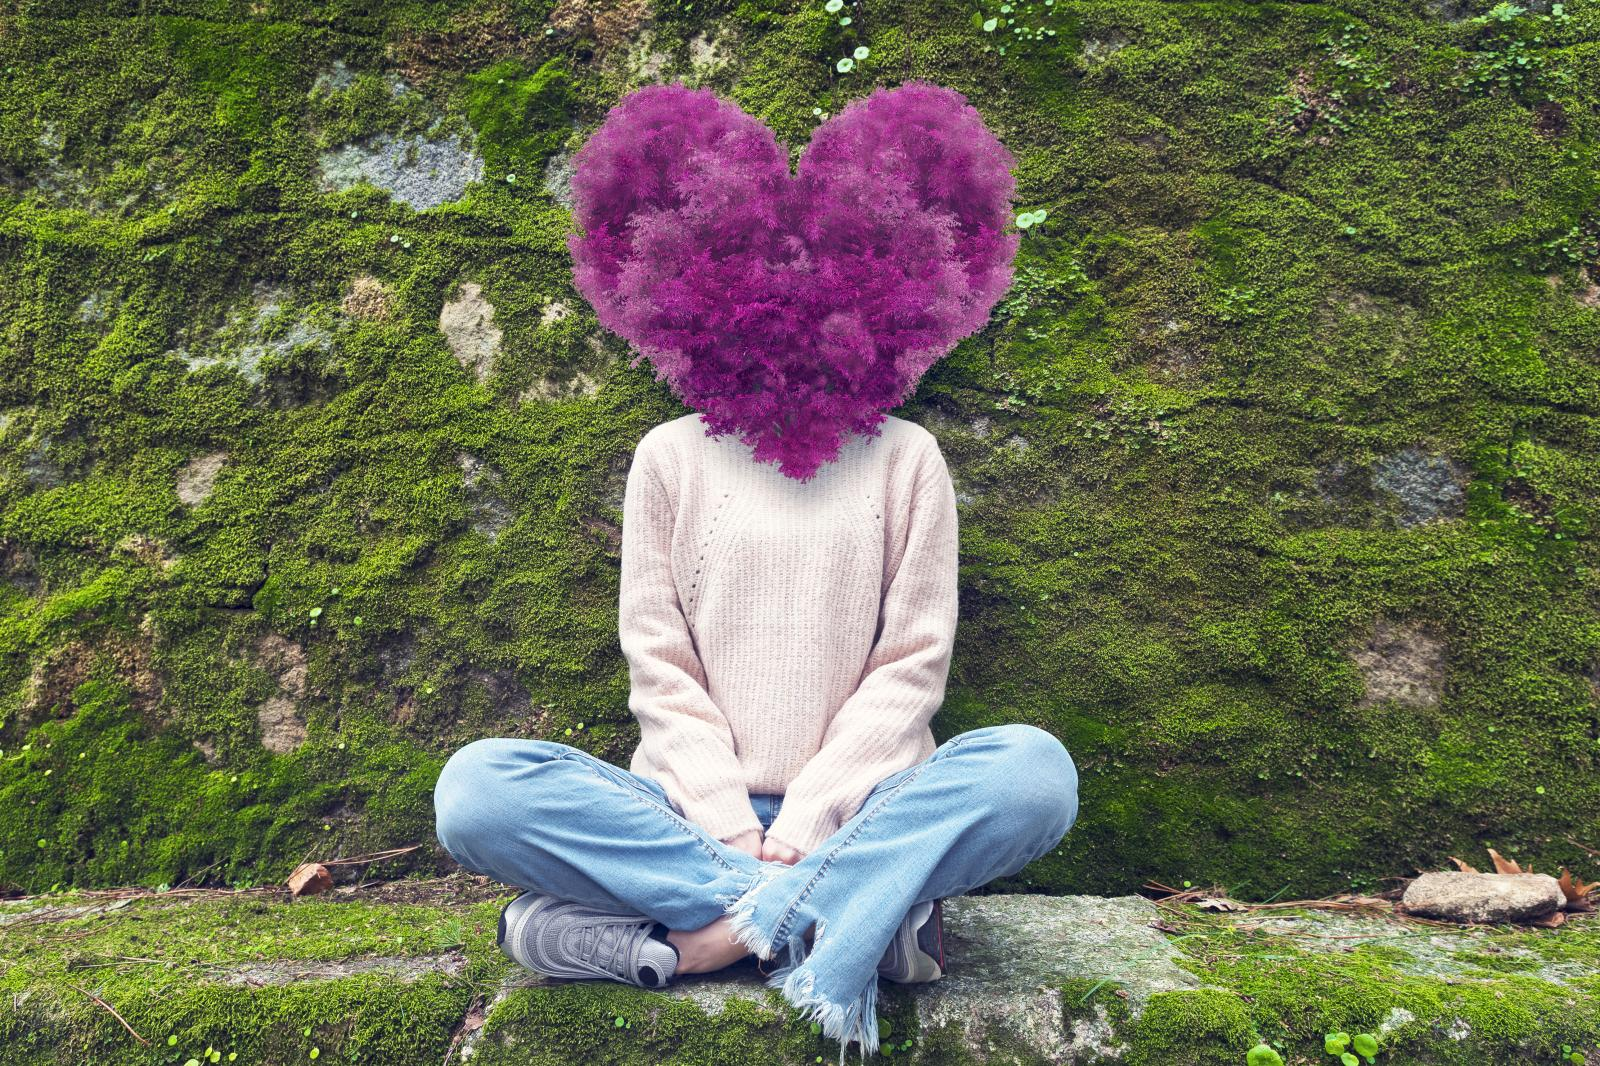 Woman with purple heart-shaped tree over face, sitting on a stone bench